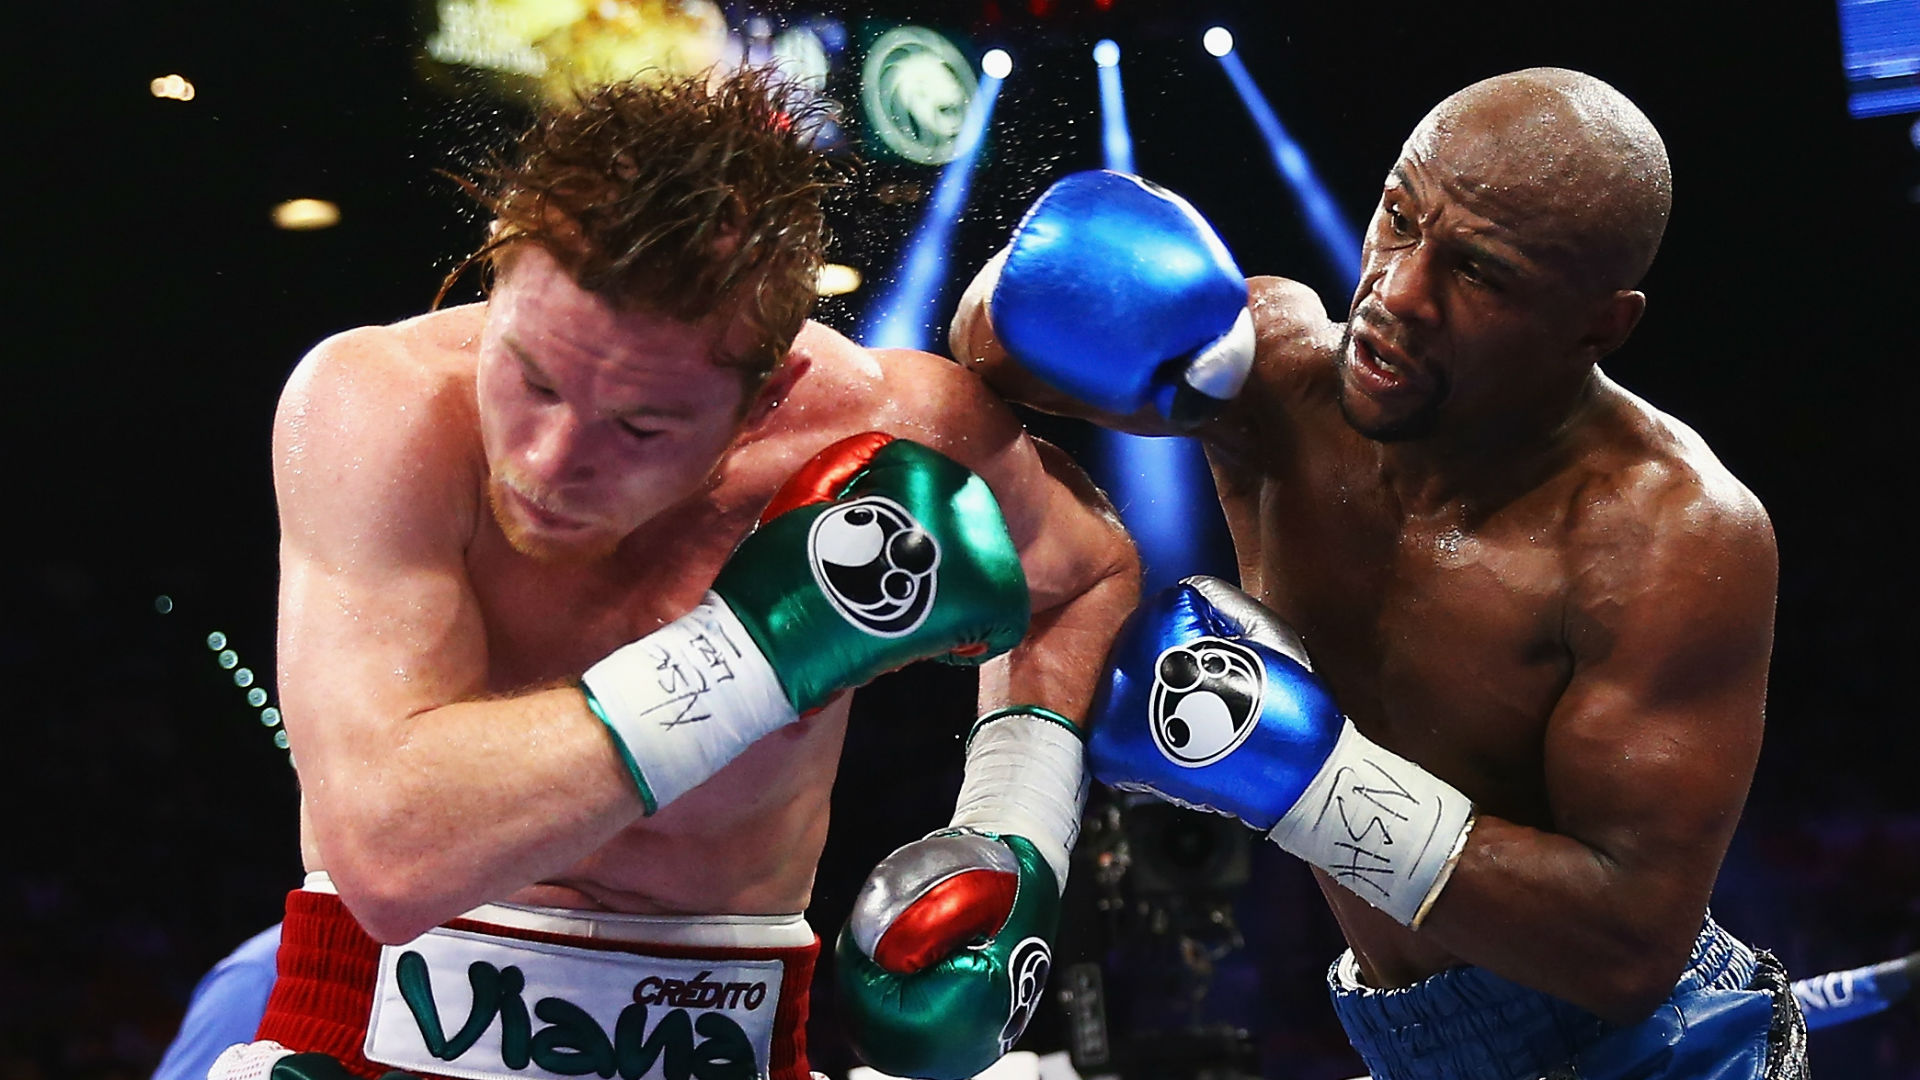 Canelo still building his legacy after learning from Mayweather defeat - Sulaiman